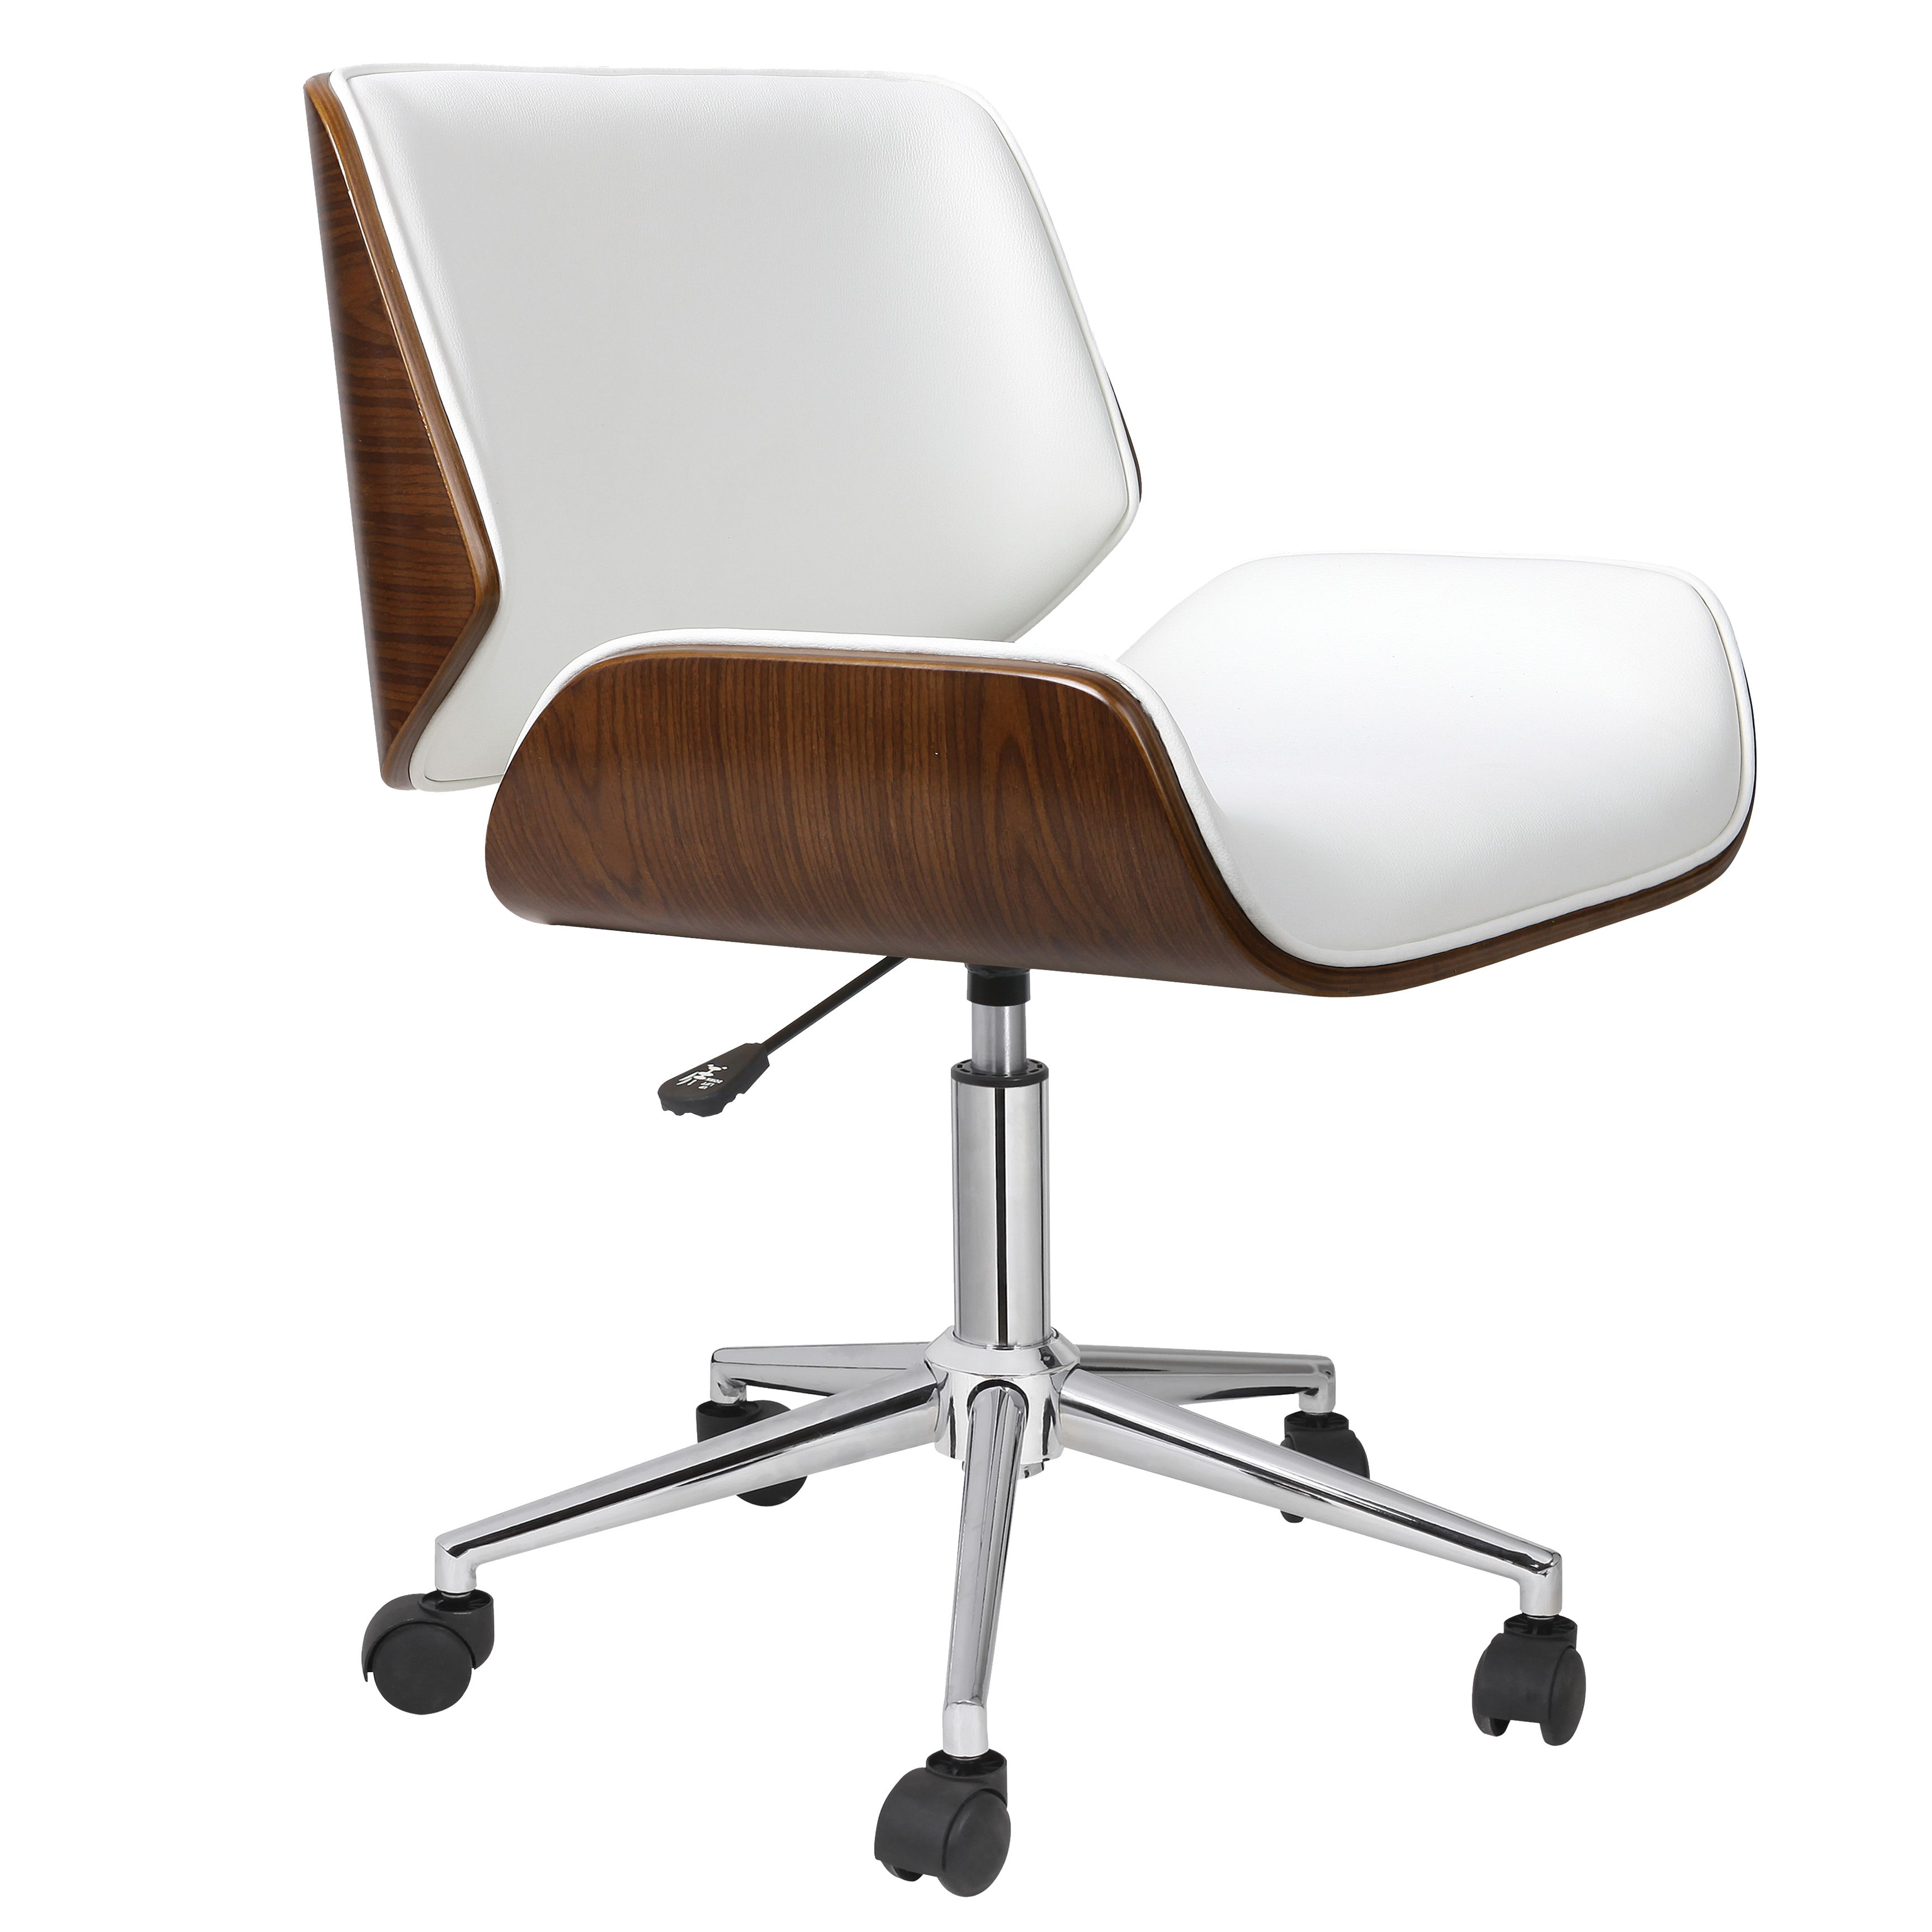 Tan leather office chair - Porthos Home Dove Wood And Faux Leather Office Chair By Porthos Home